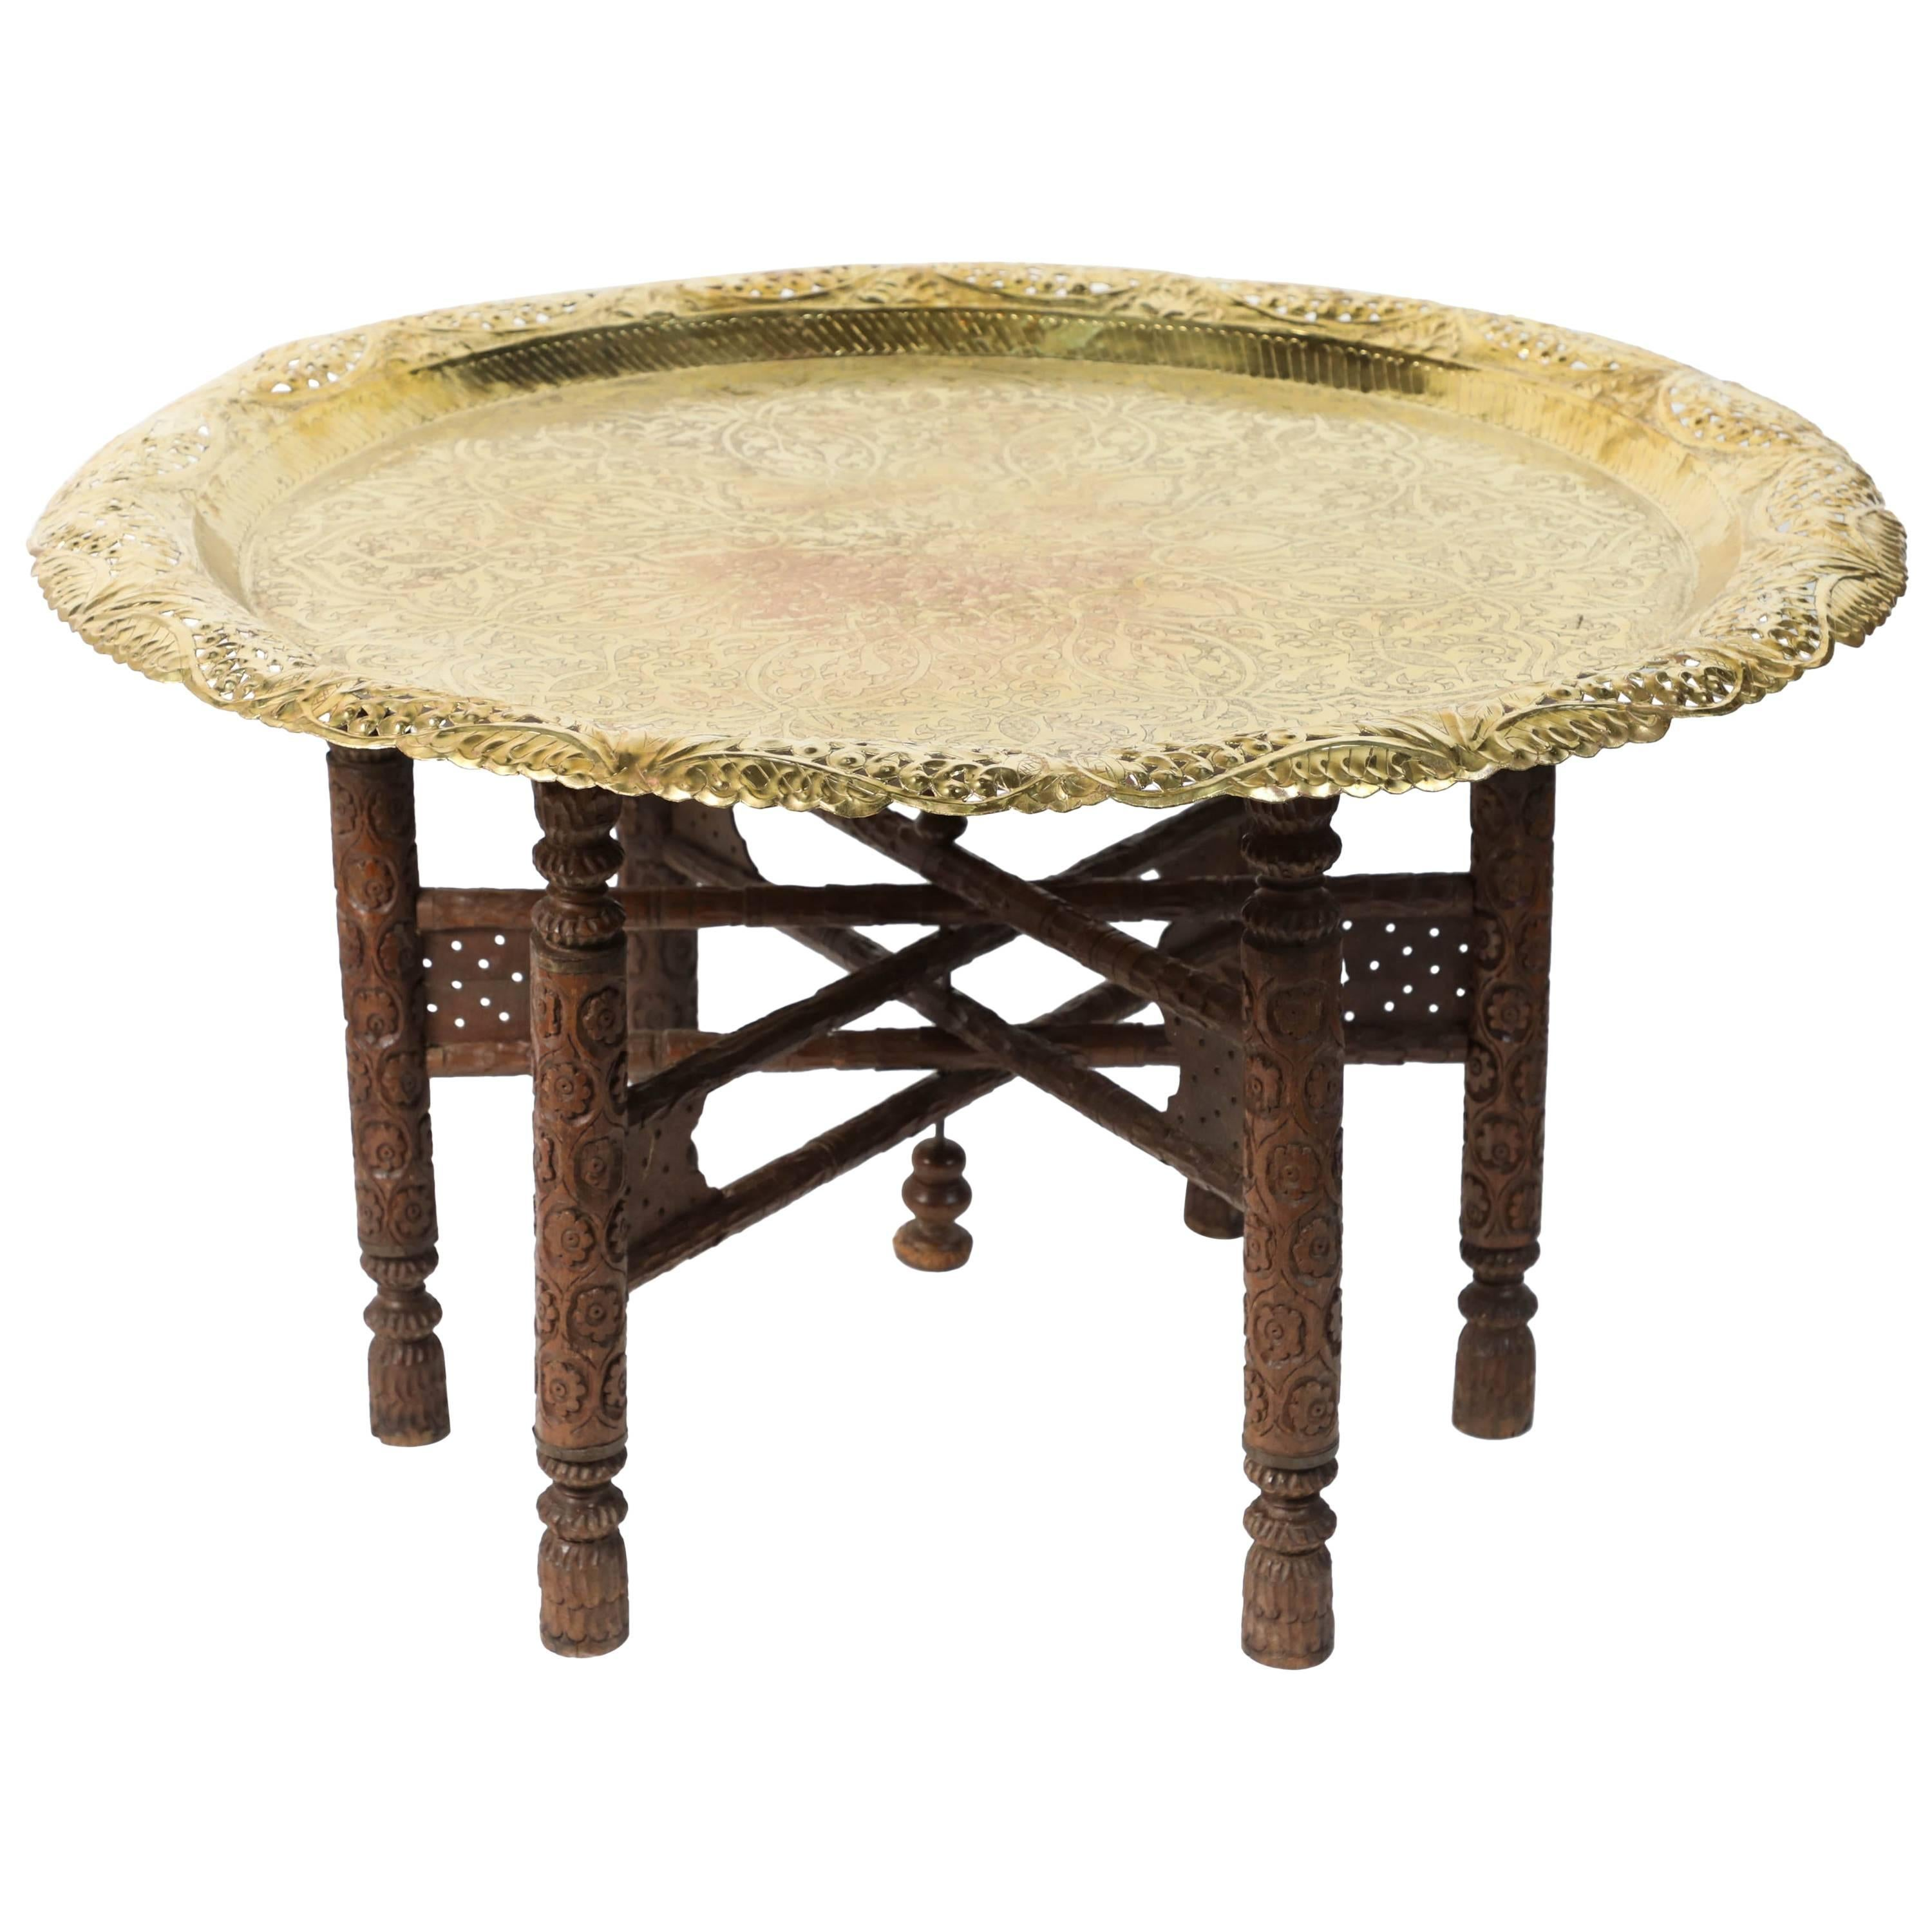 Anglo Indian Engraved Round Polished Brass Tray Coffee Table On Wooden  Stand For Sale